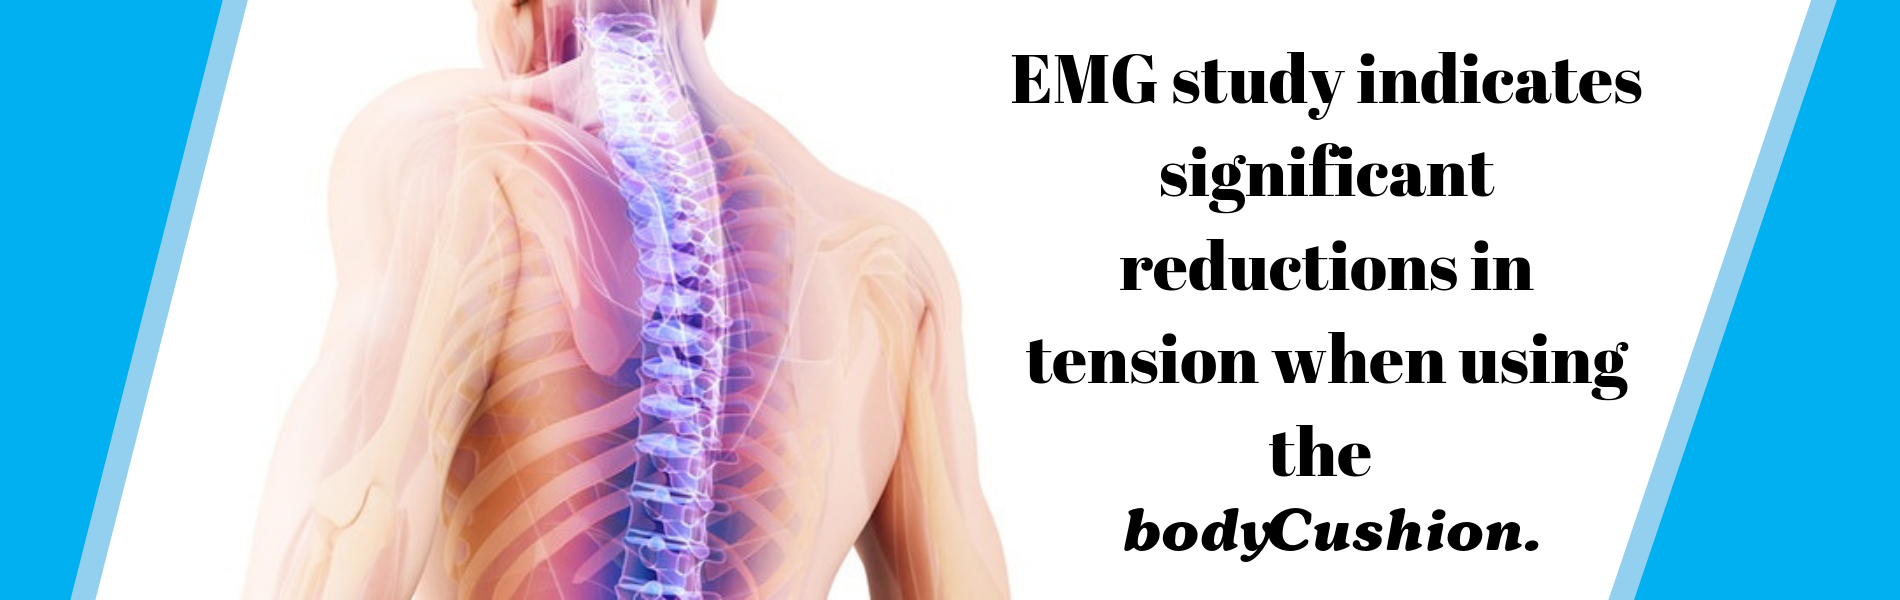 EMG Study indicates significant reductions in tension when using the bodyCushin